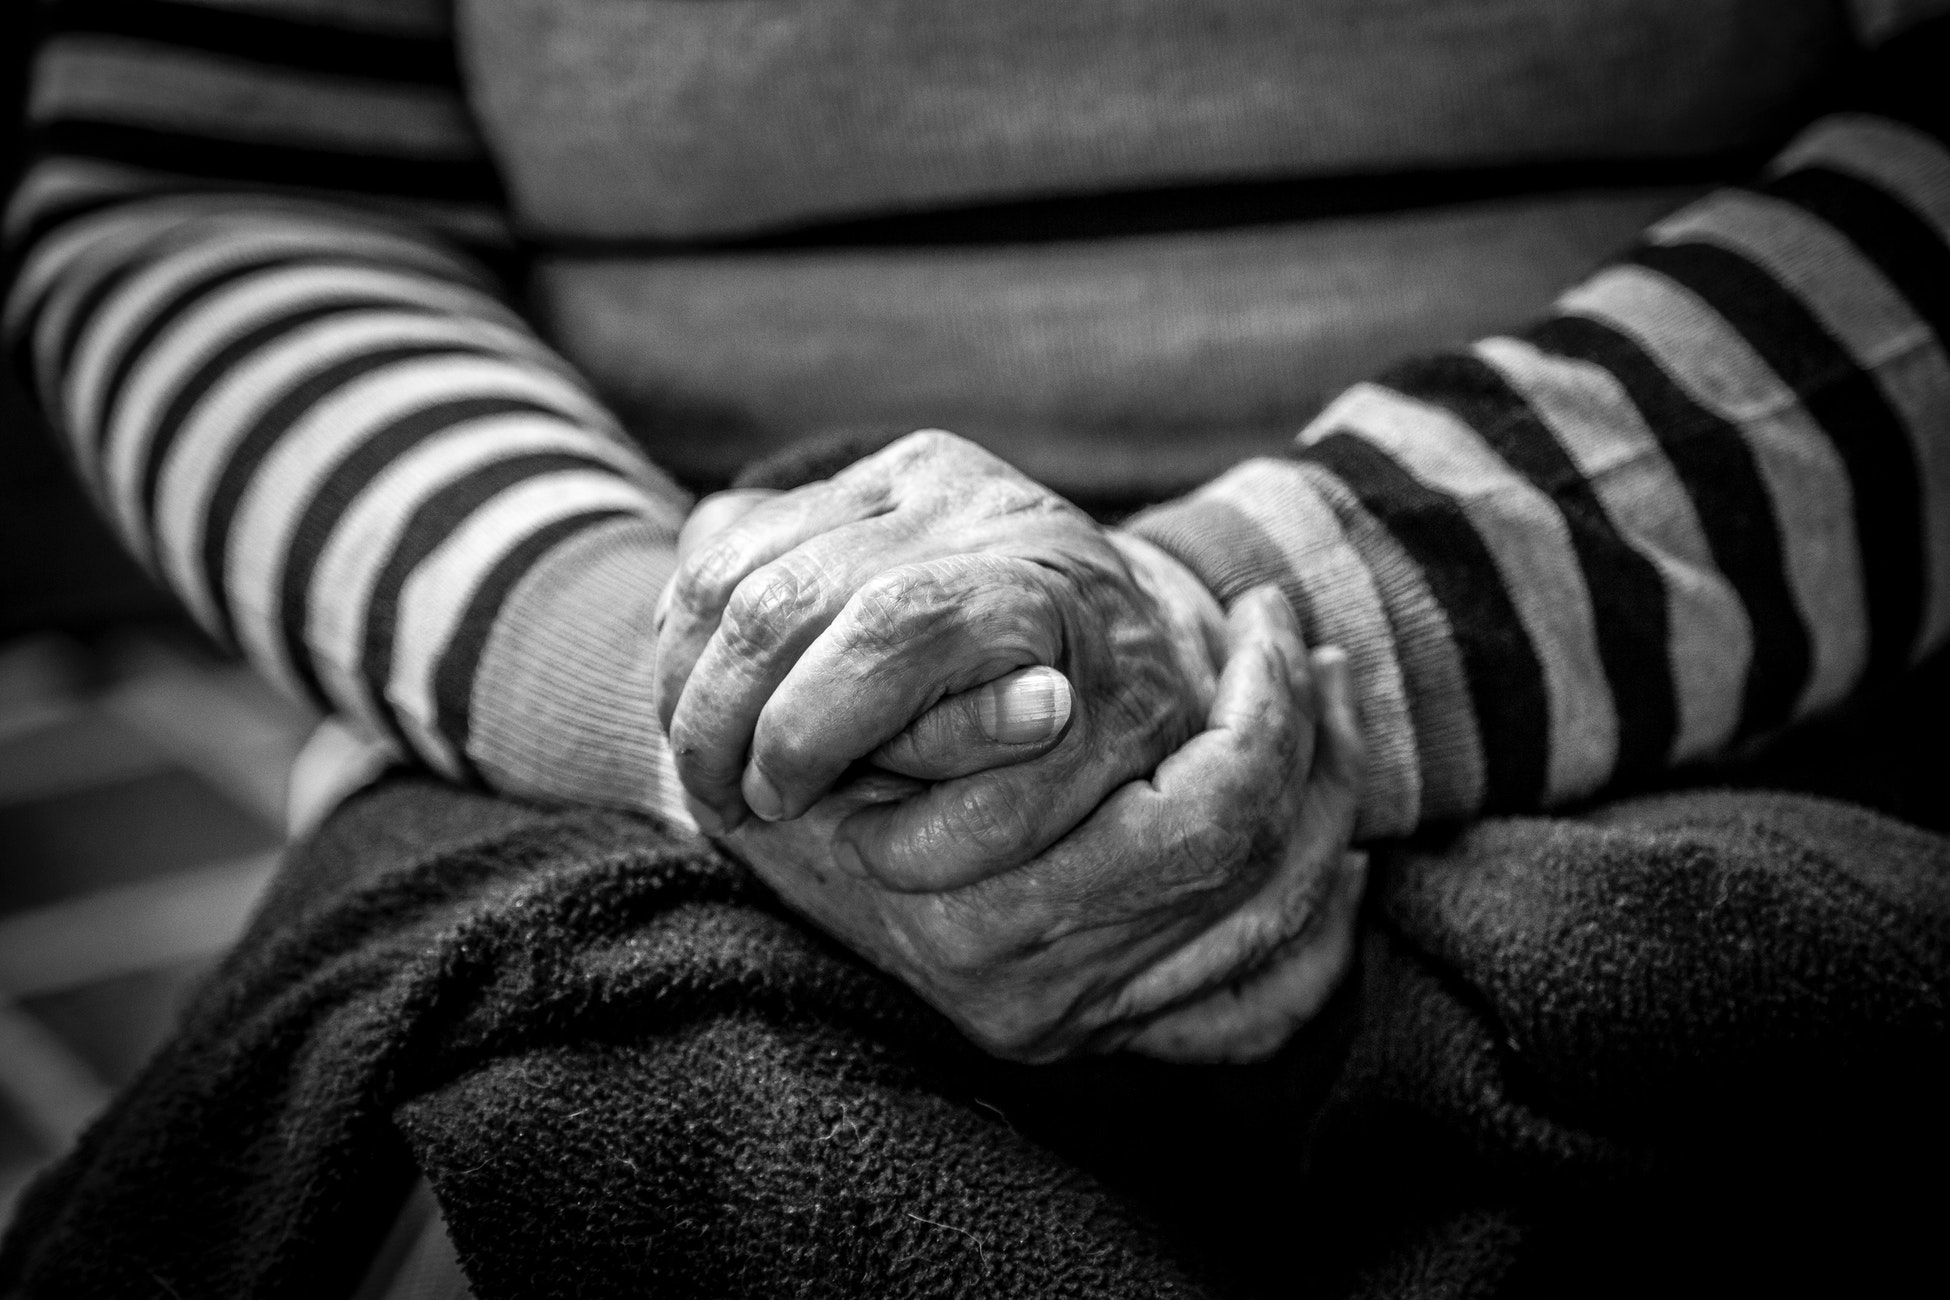 Black and white photo of a person sitting with their hands crossed on their lap.